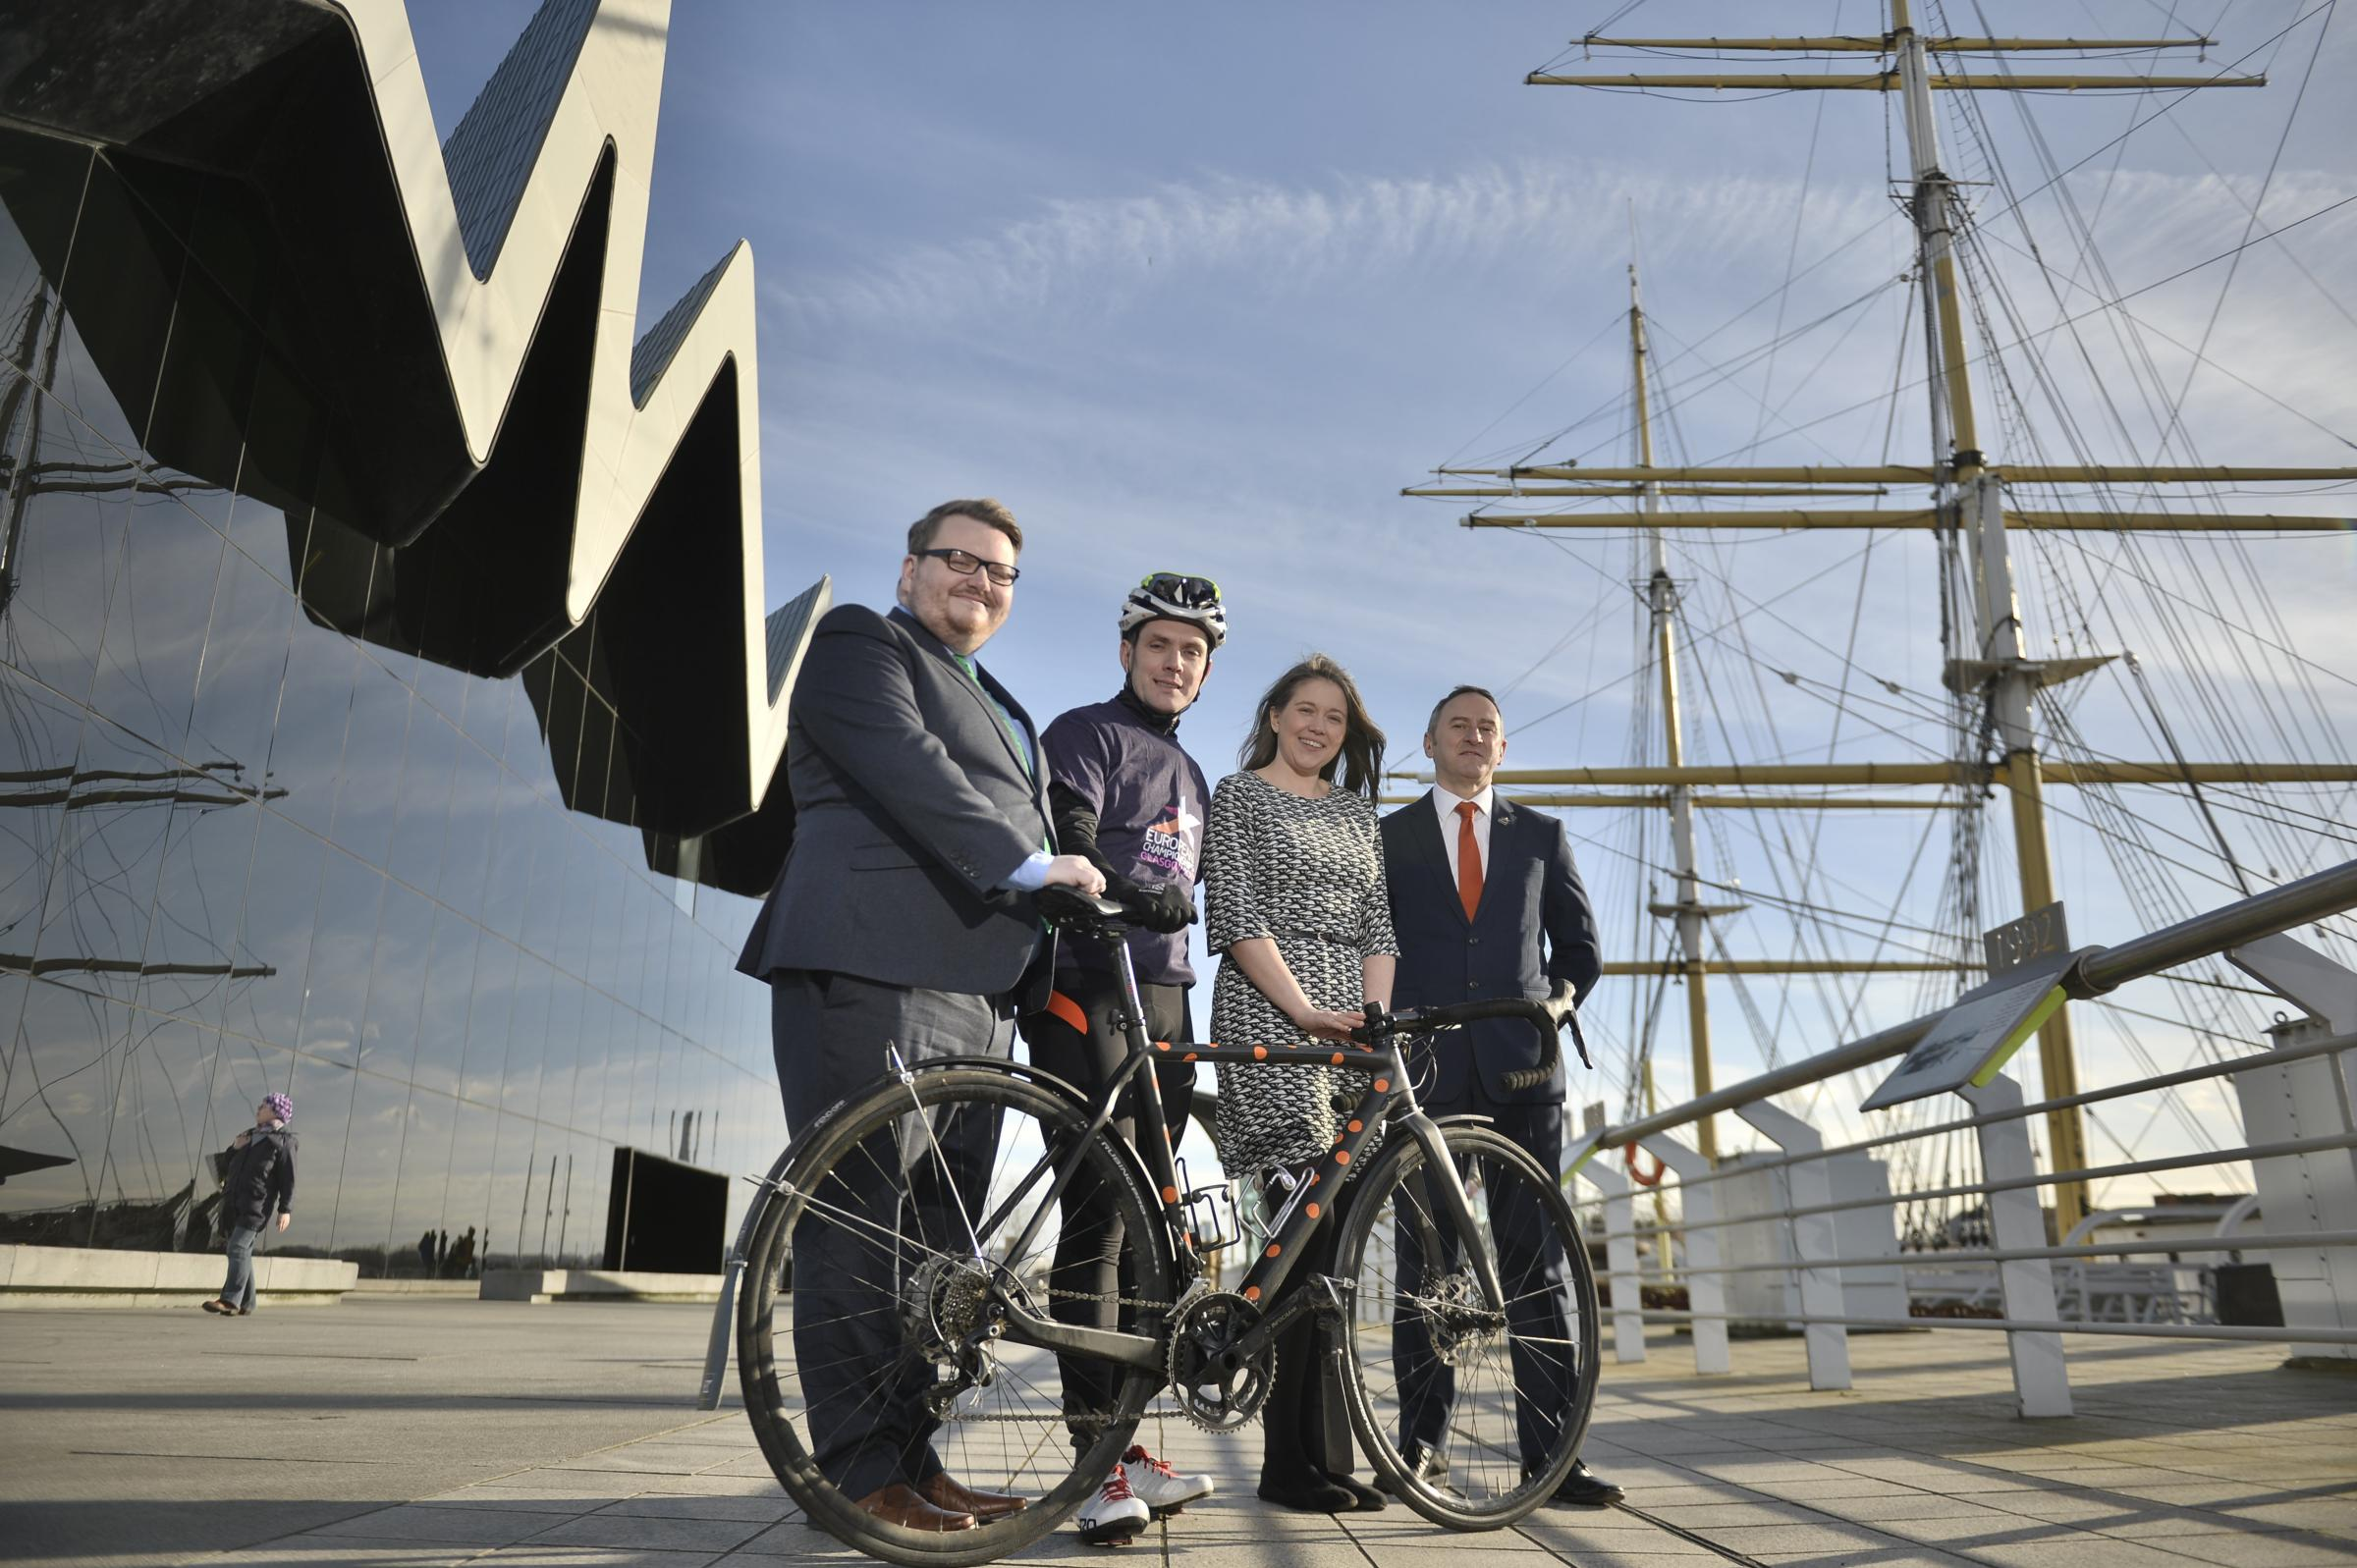 More than 300 of the continent's finest road cyclists will race through Glasgow, East Dunbartonshire and Stirling